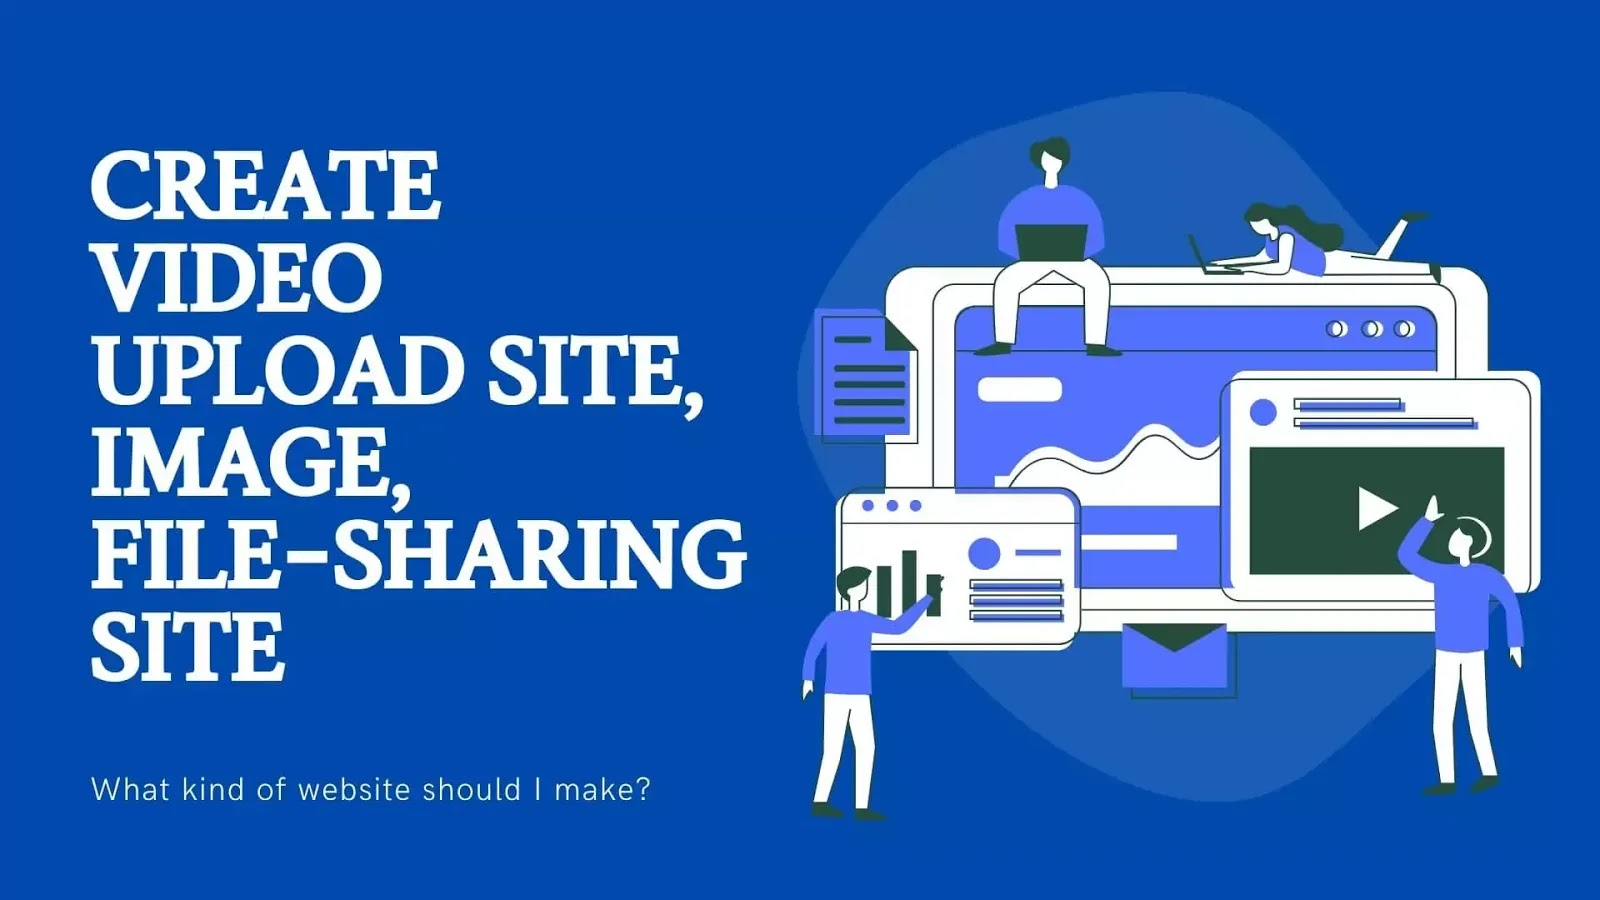 Create video upload site, image upload site or file-sharing site